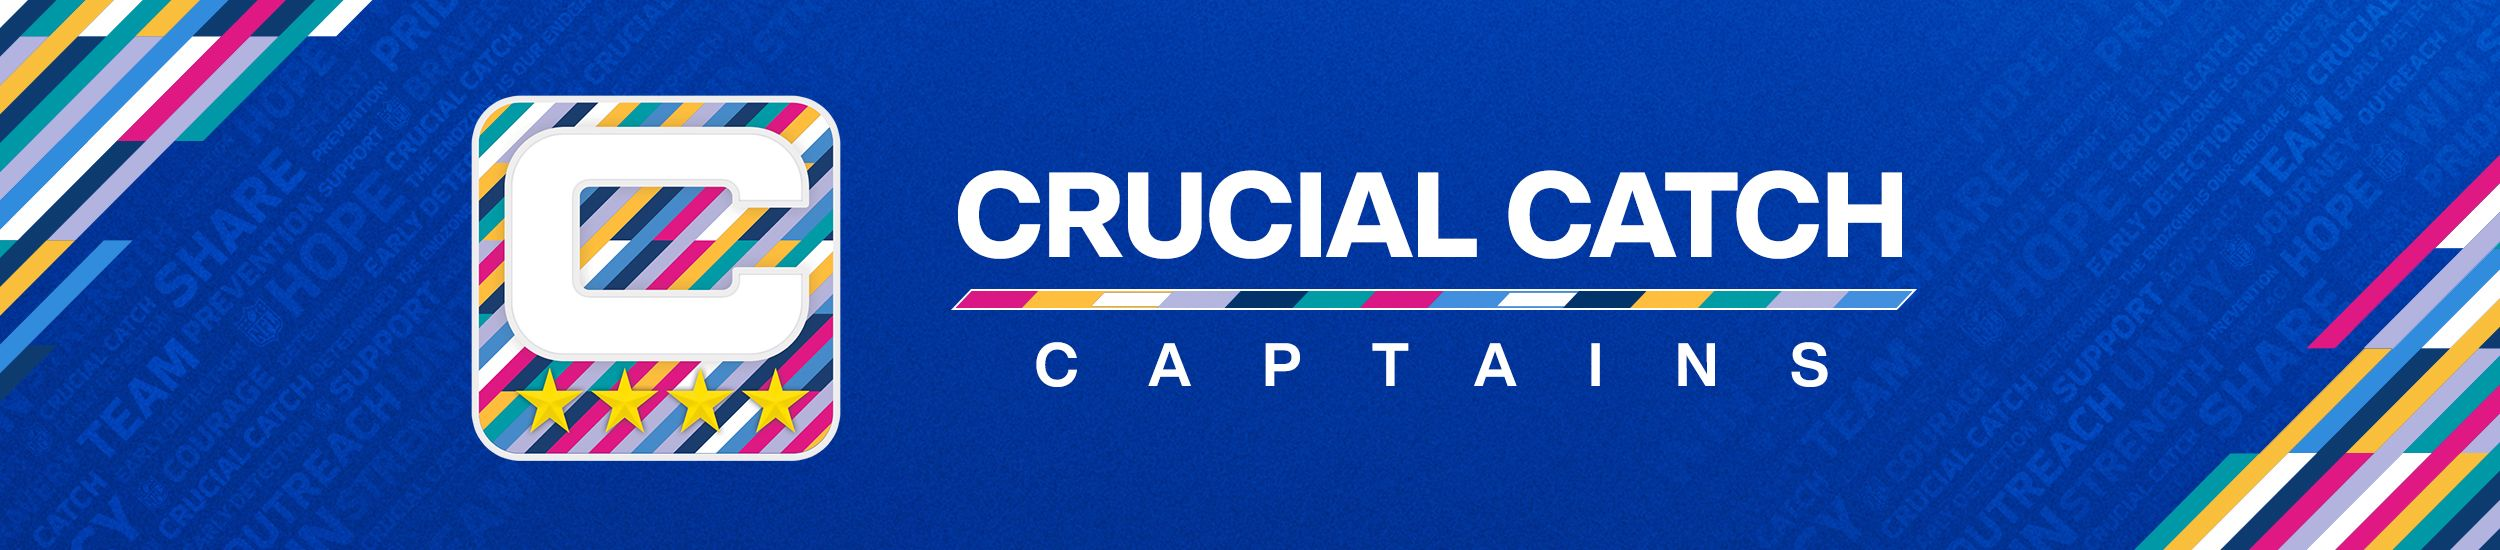 crucial-catch-captains-header